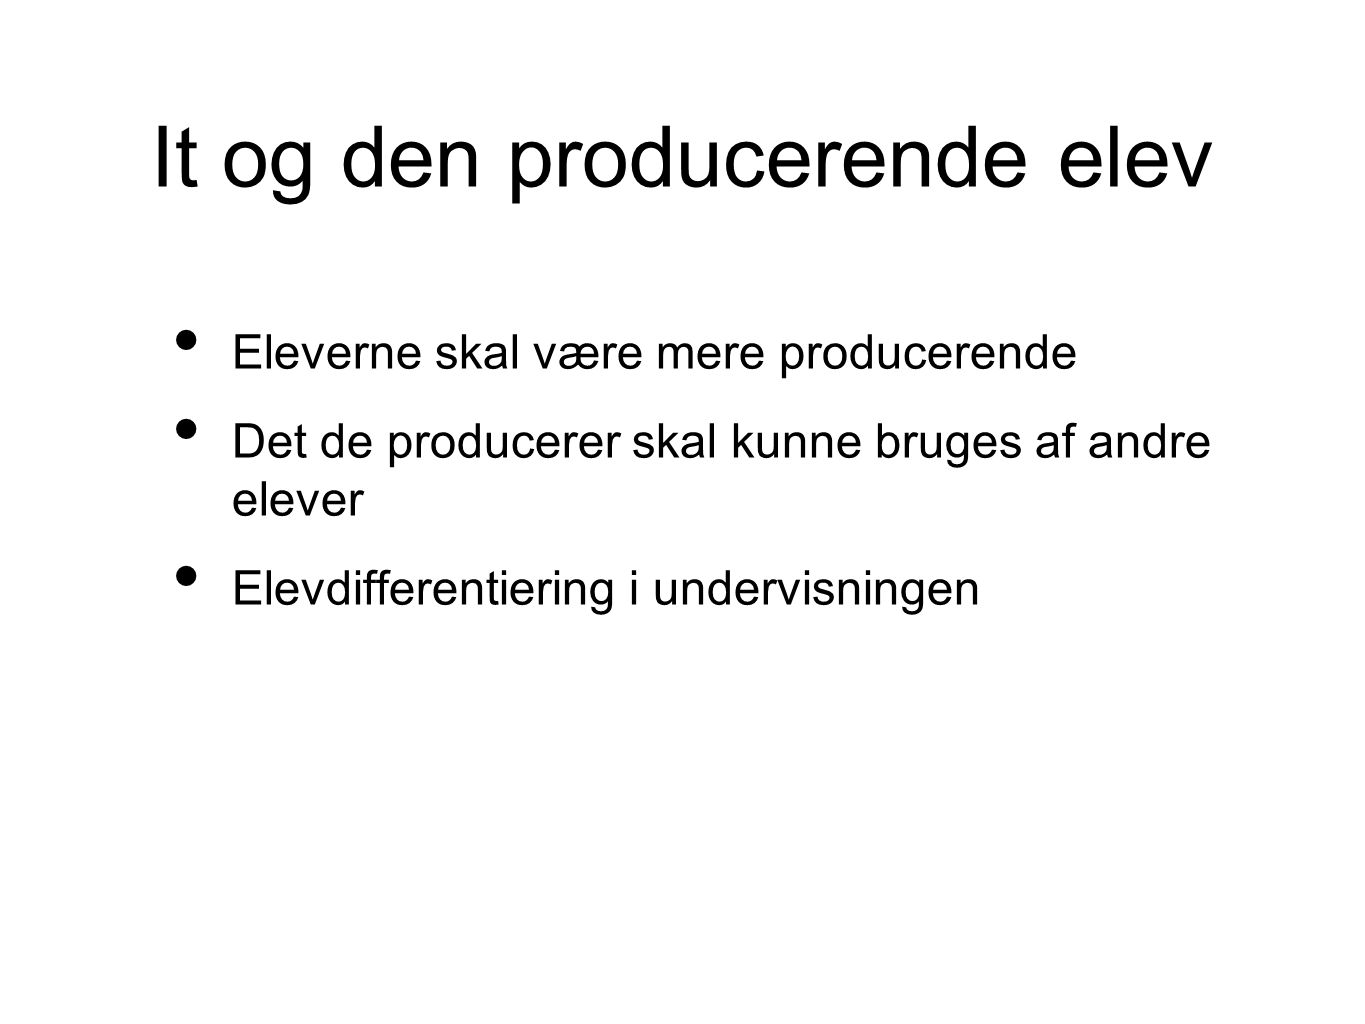 It og den producerende elev